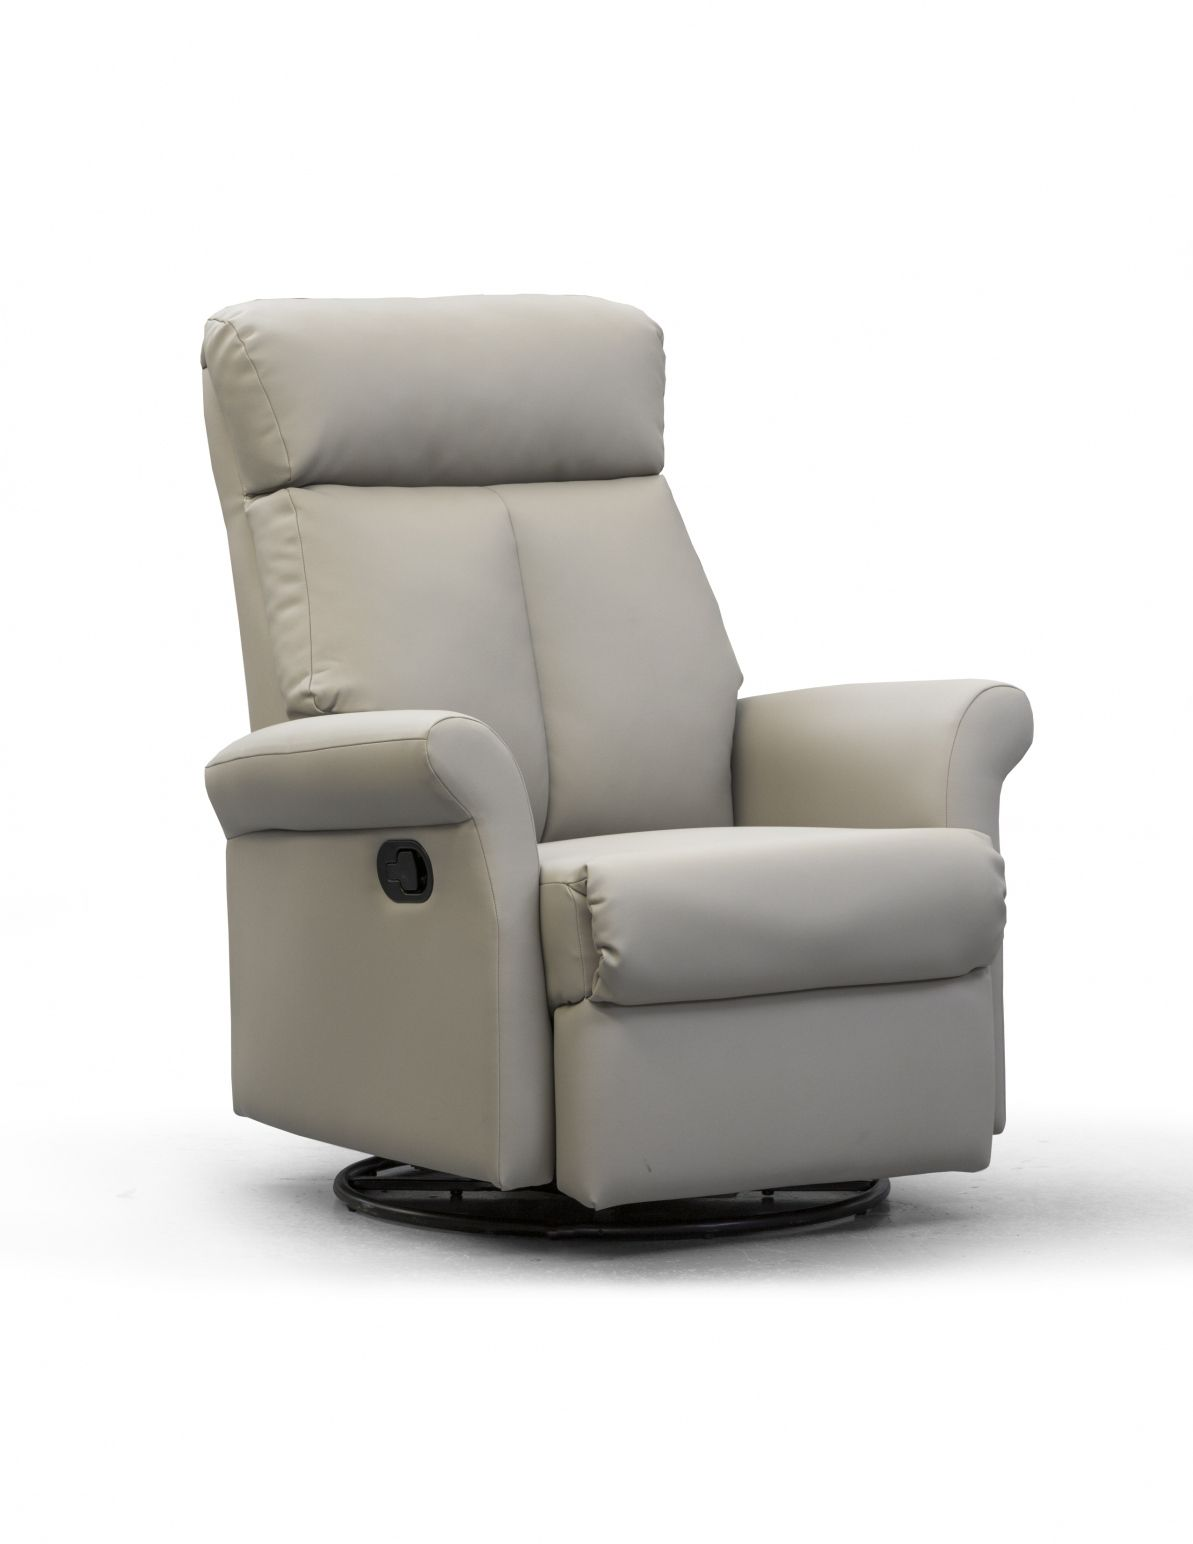 100 High End Recliner Chairs Kitchen Decorating Ideas On A Budget Check More At